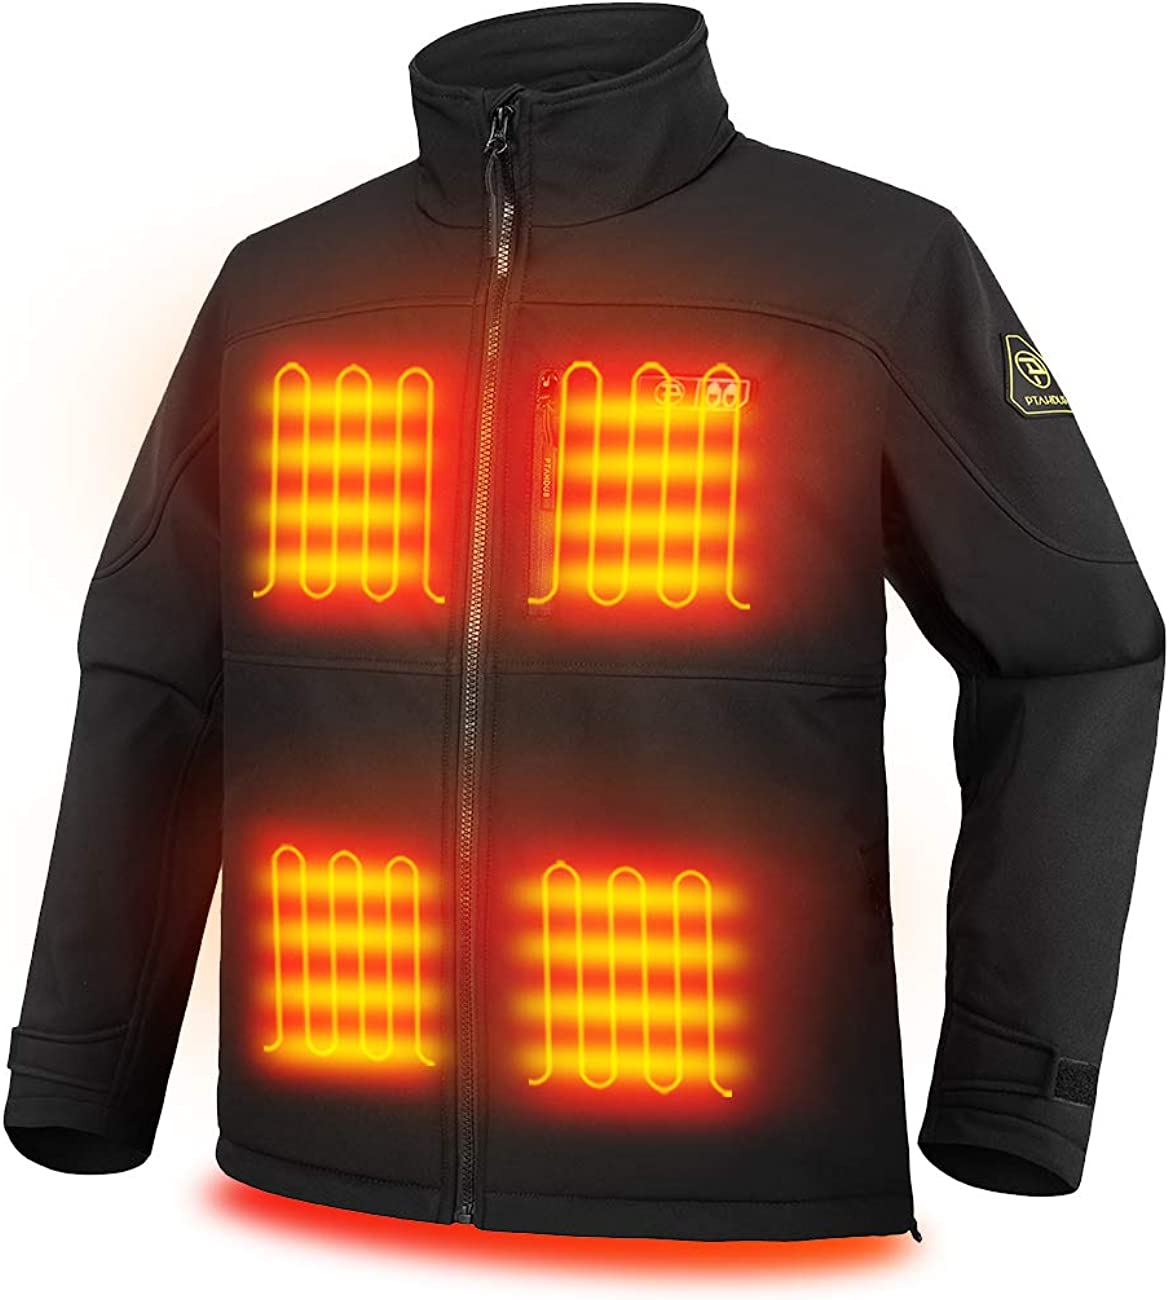 PTAHDUS Men's Heated Jacket Soft Shell, Heated Performance Jacket Soft Shell with Hand Warmer (Includes 7.4V Battery Pack)